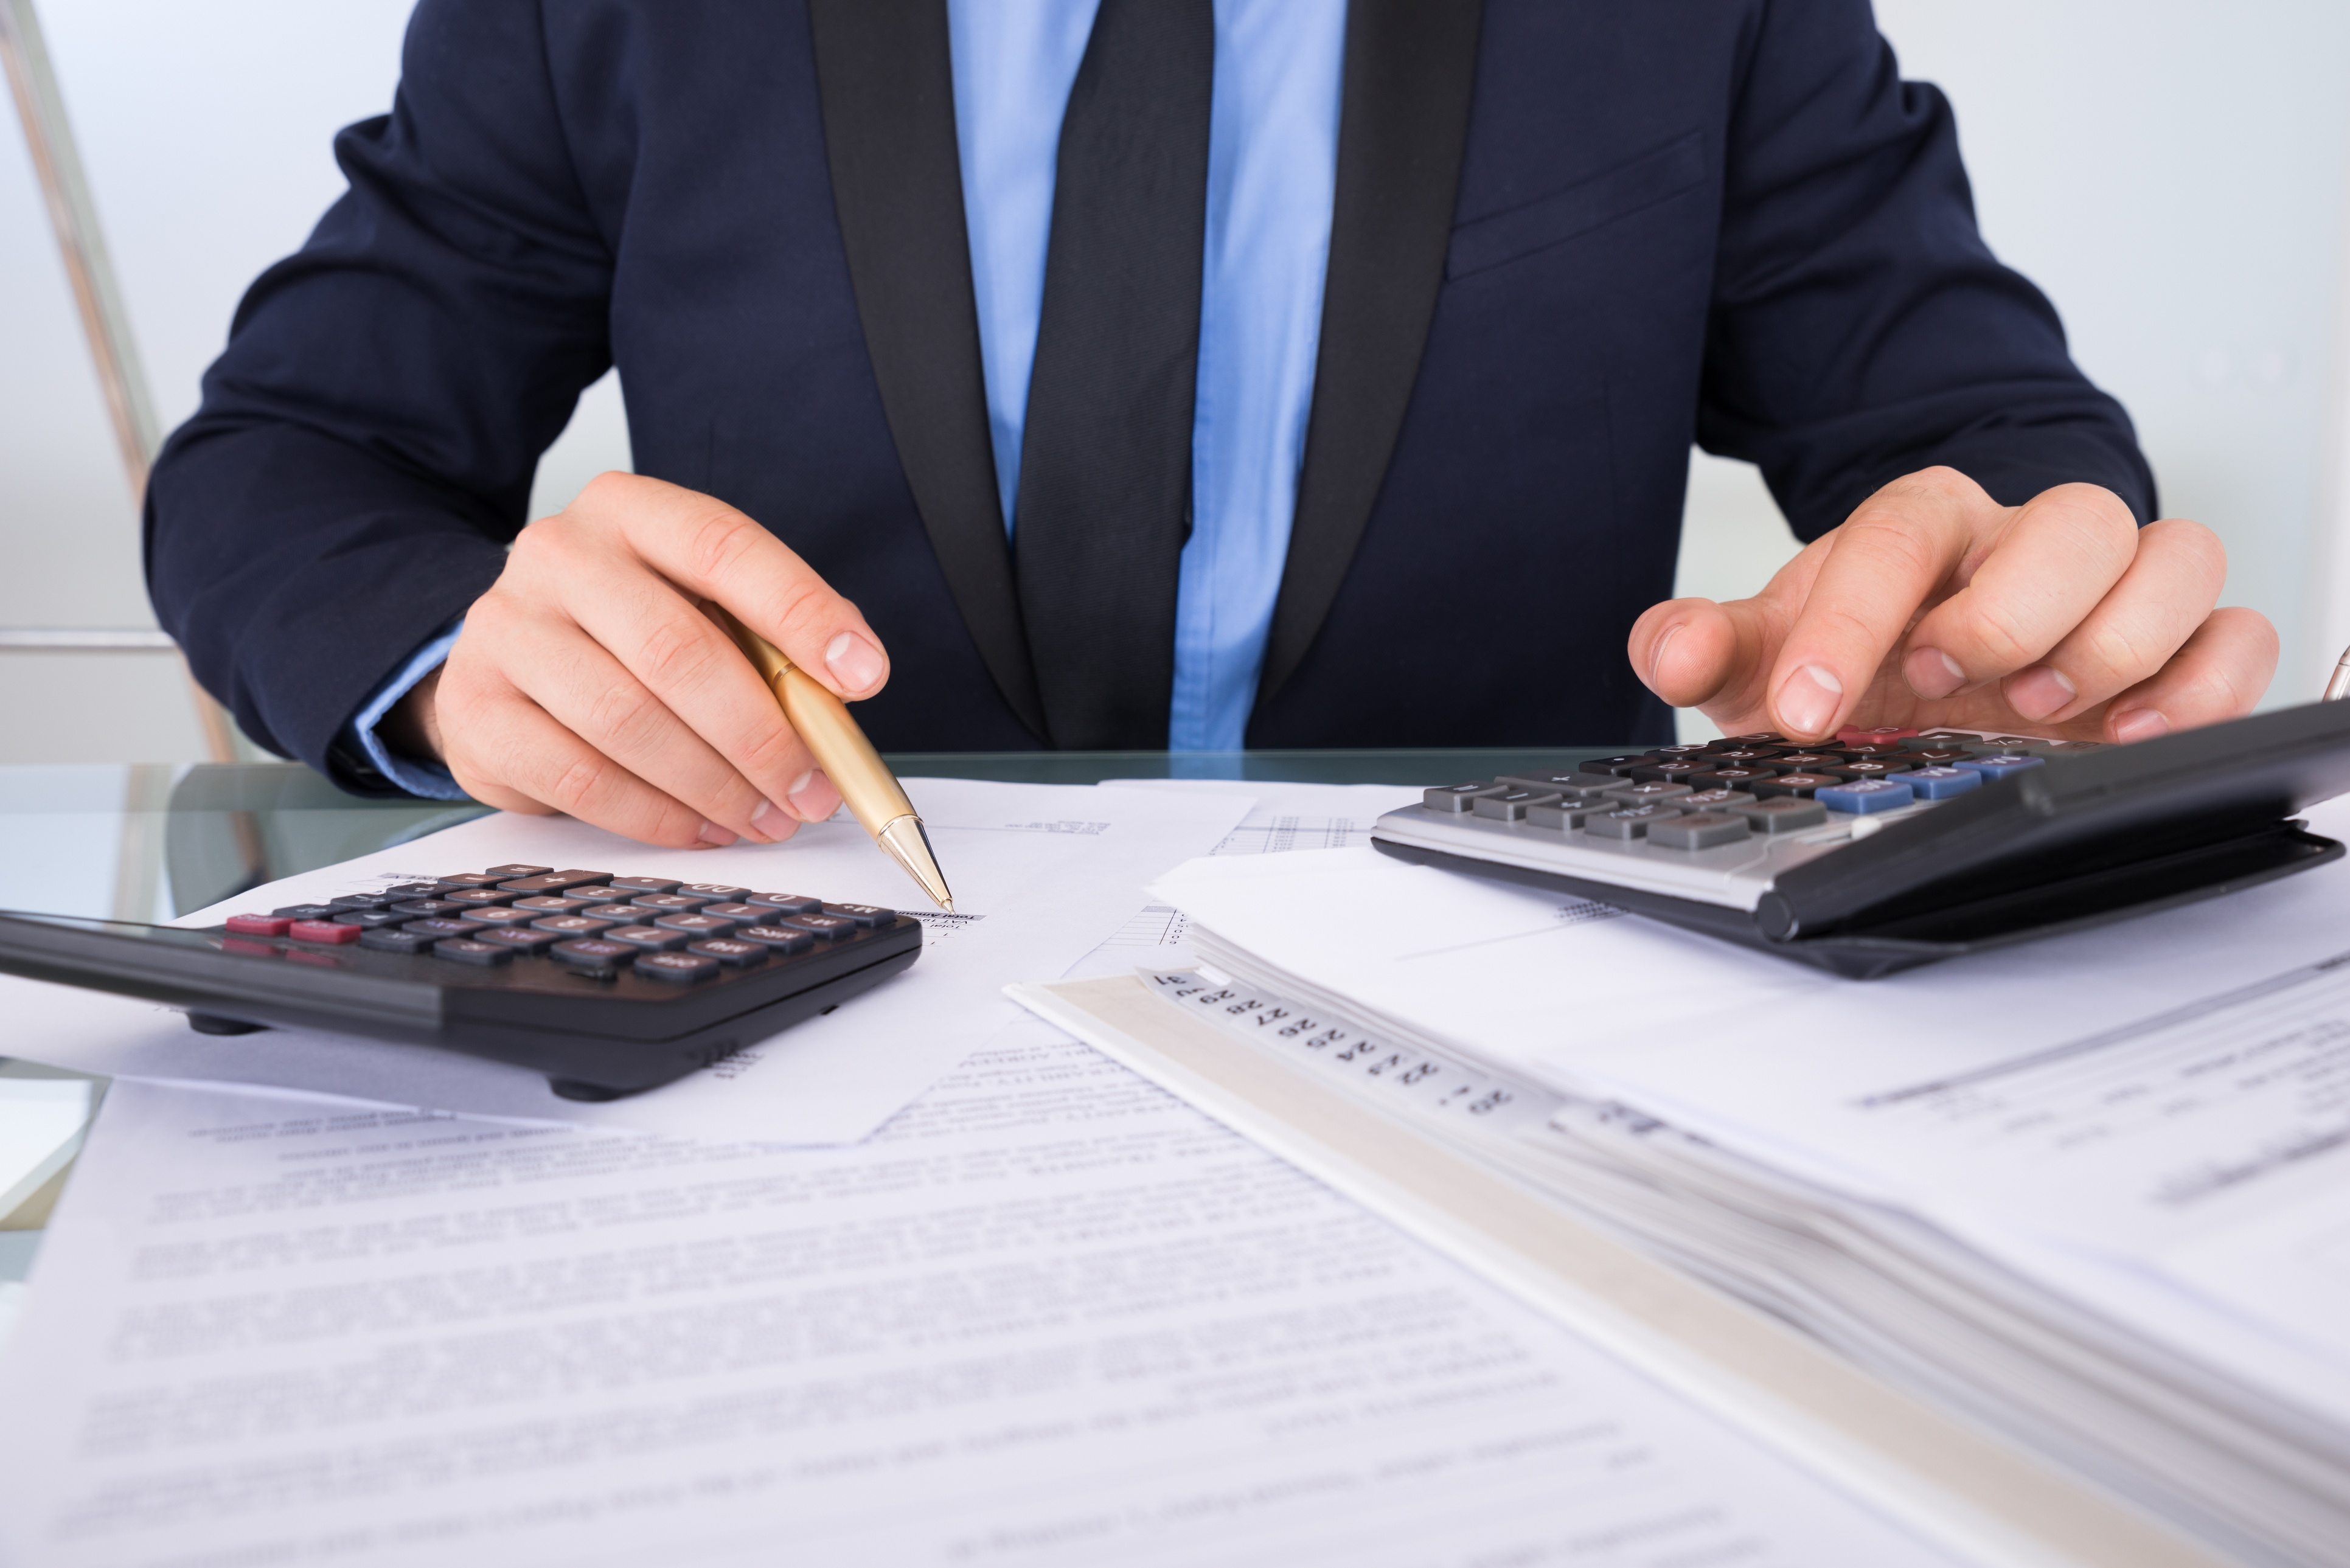 Does Your Budget Have Room for a Crisis Plan?